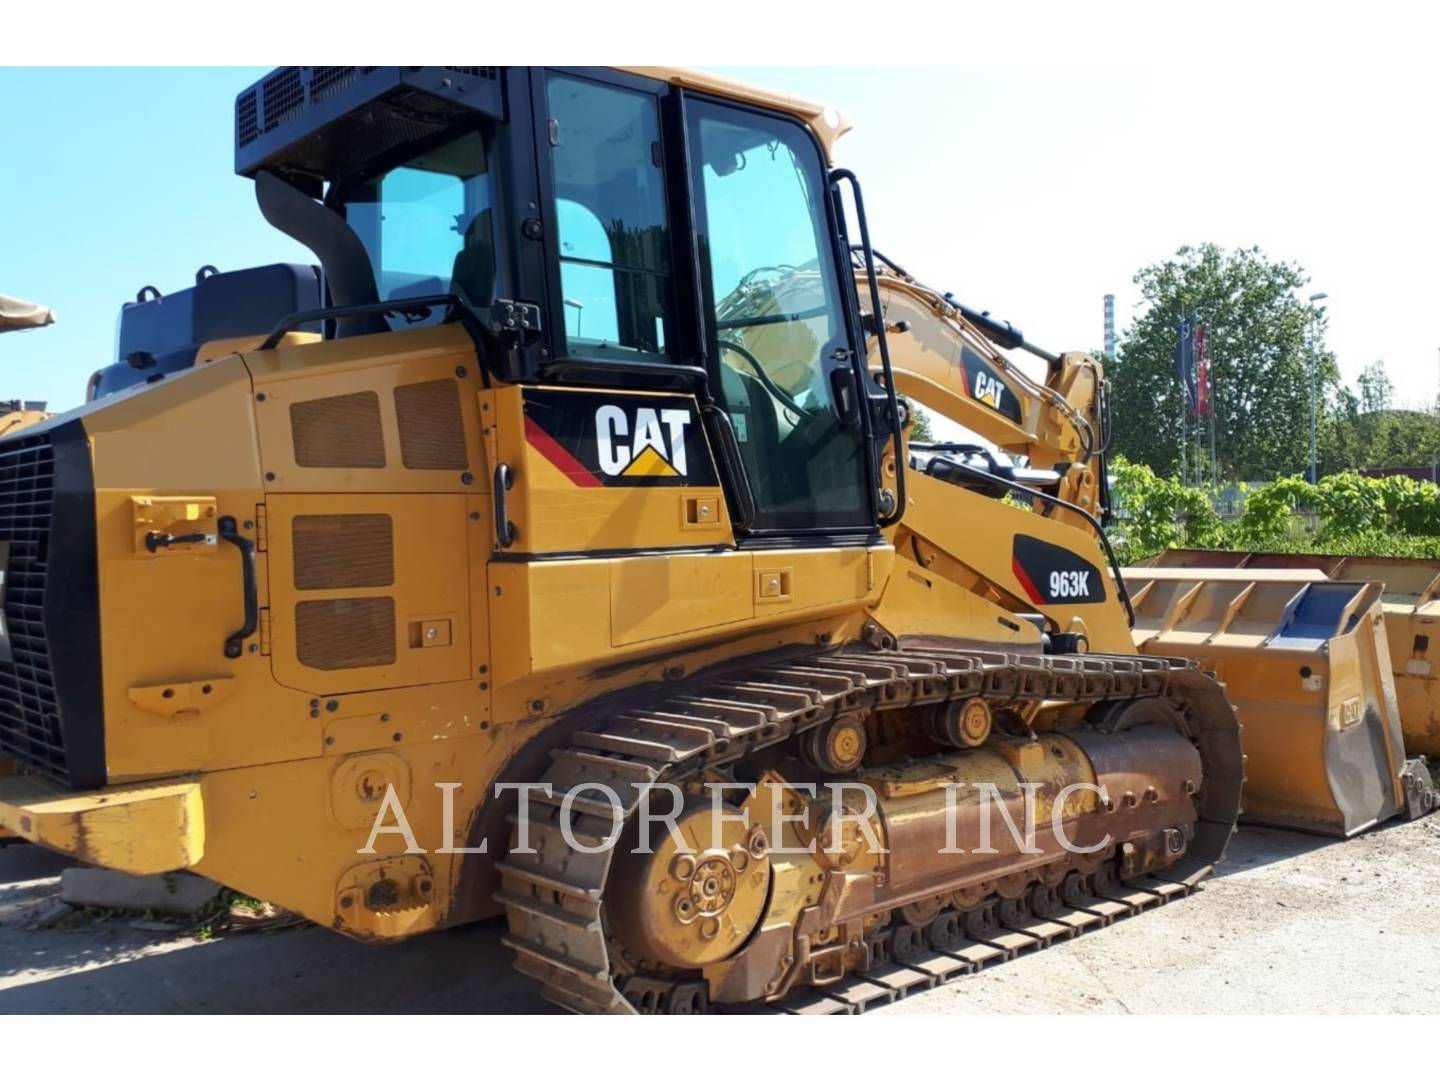 2017 Caterpillar 963K - Altorfer